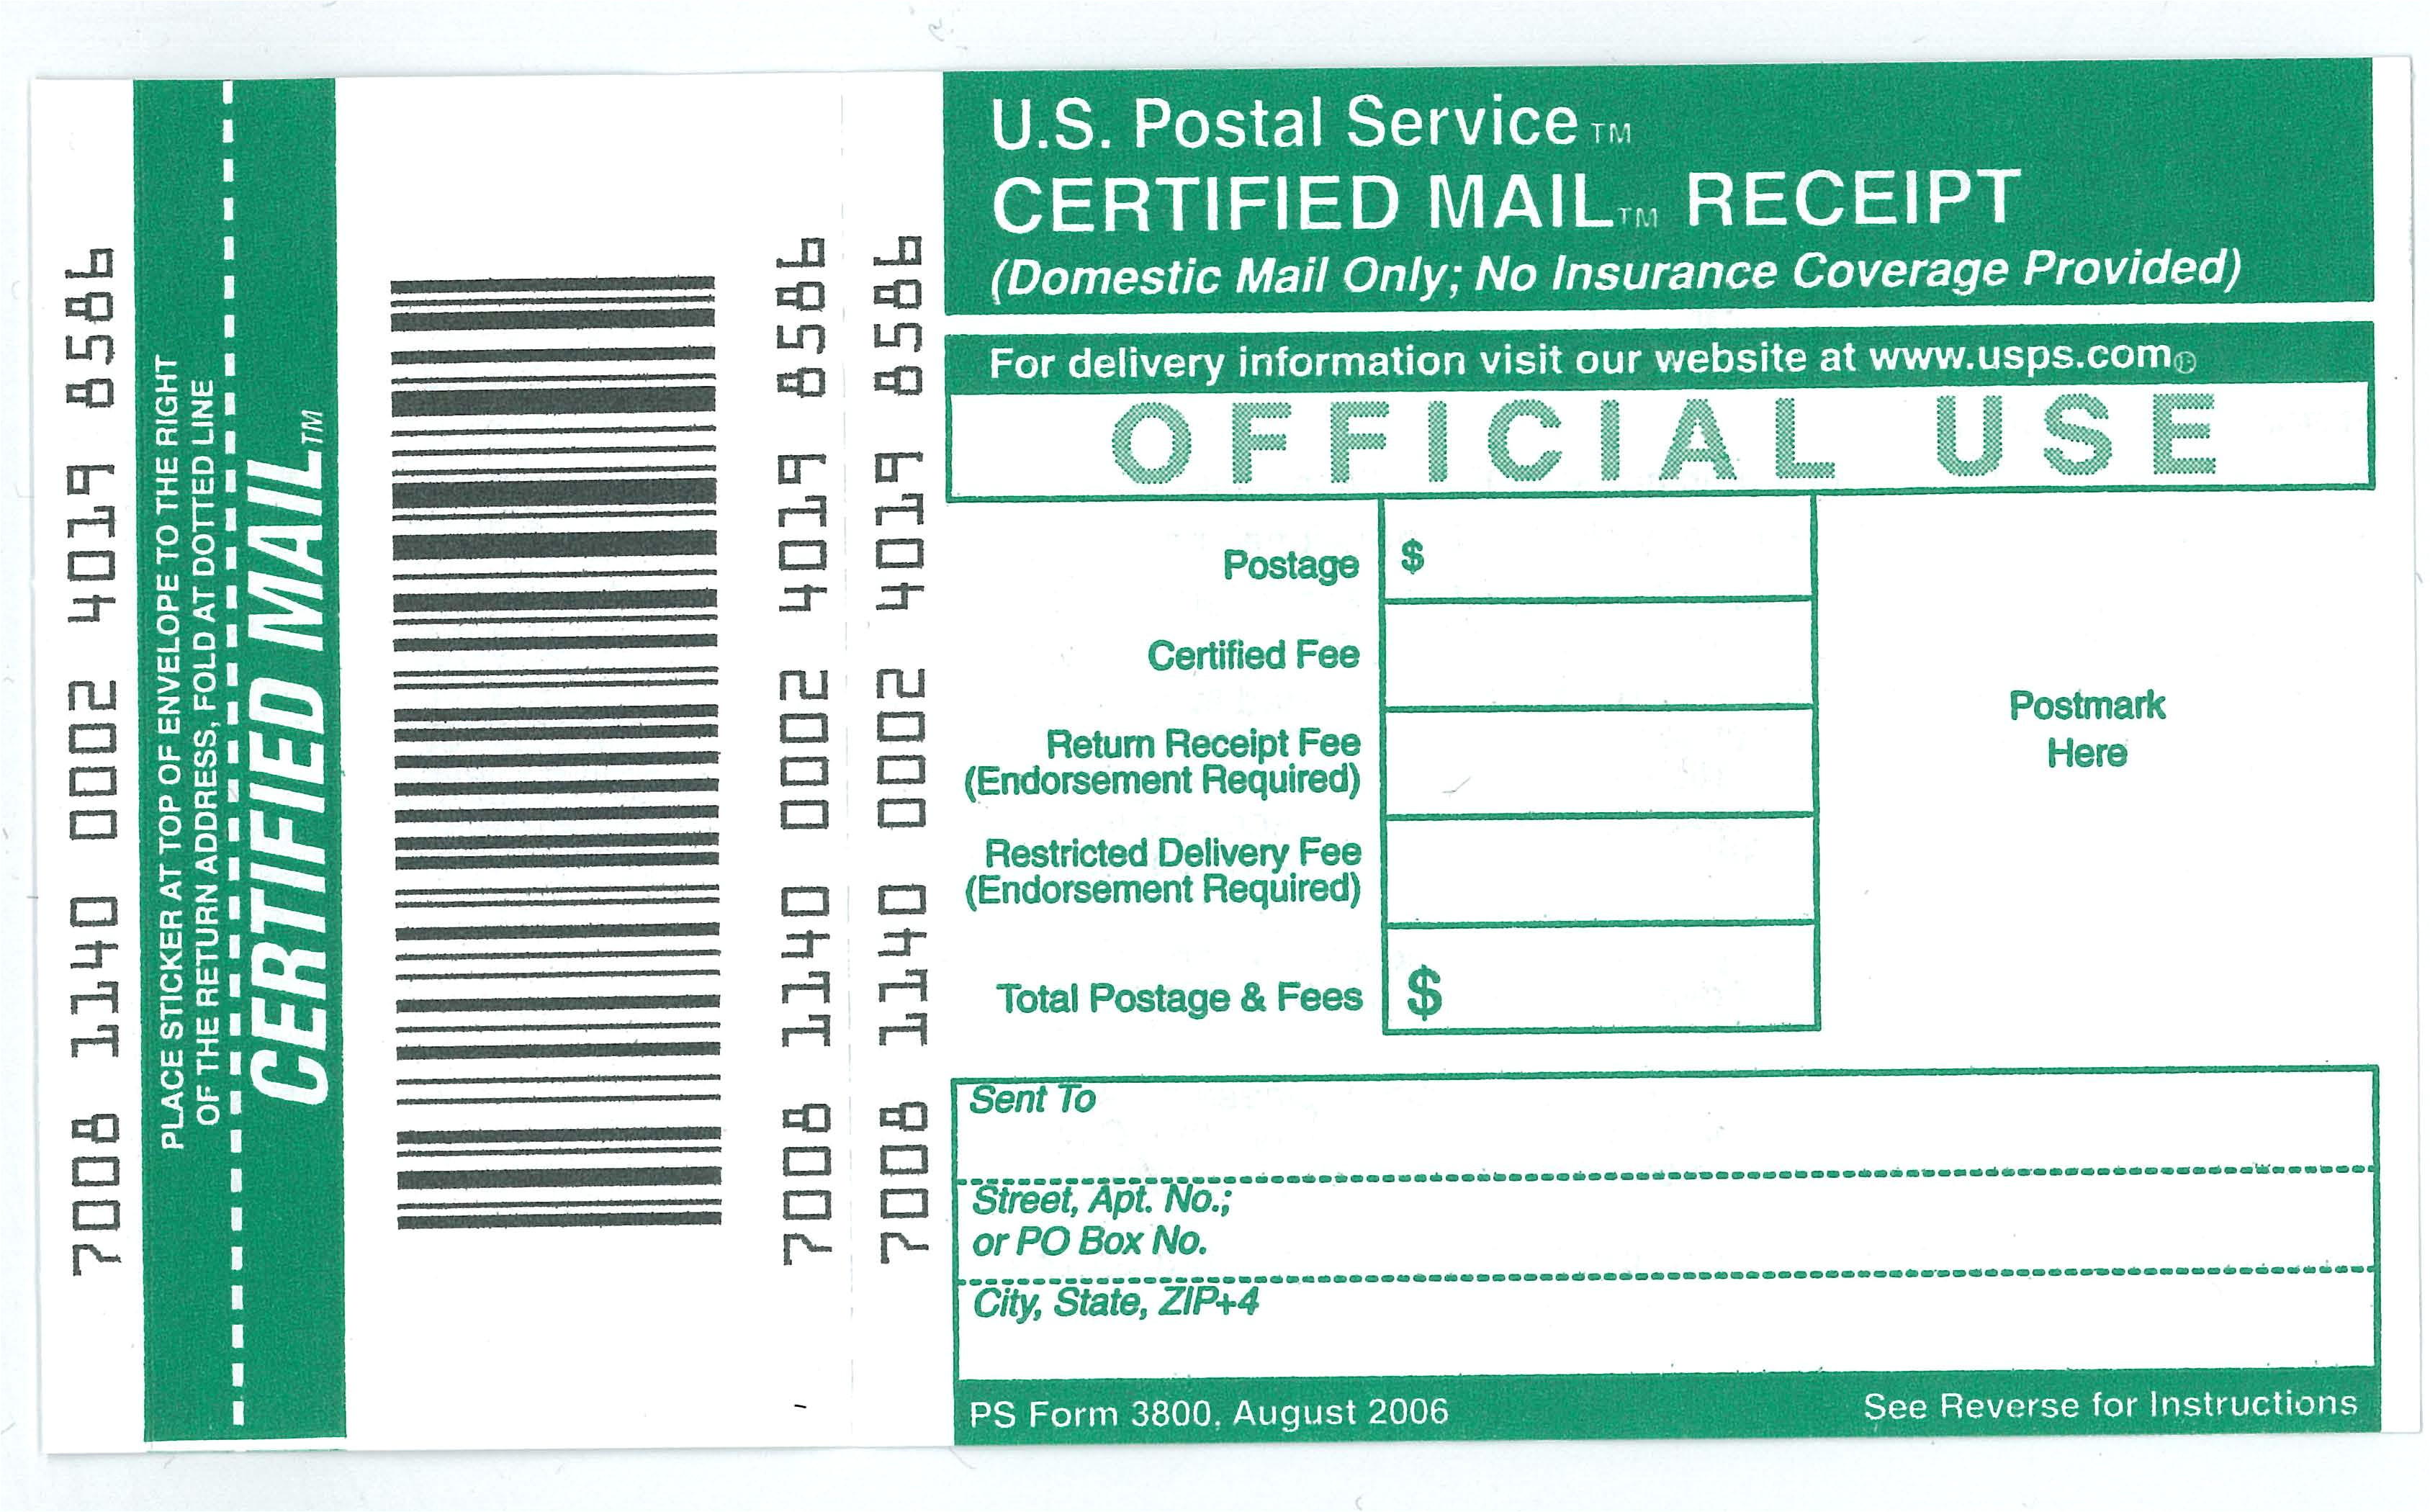 Certified Mail Receipt Template Ucr Mail Services Receipt for Certified Mail Ps form 3800